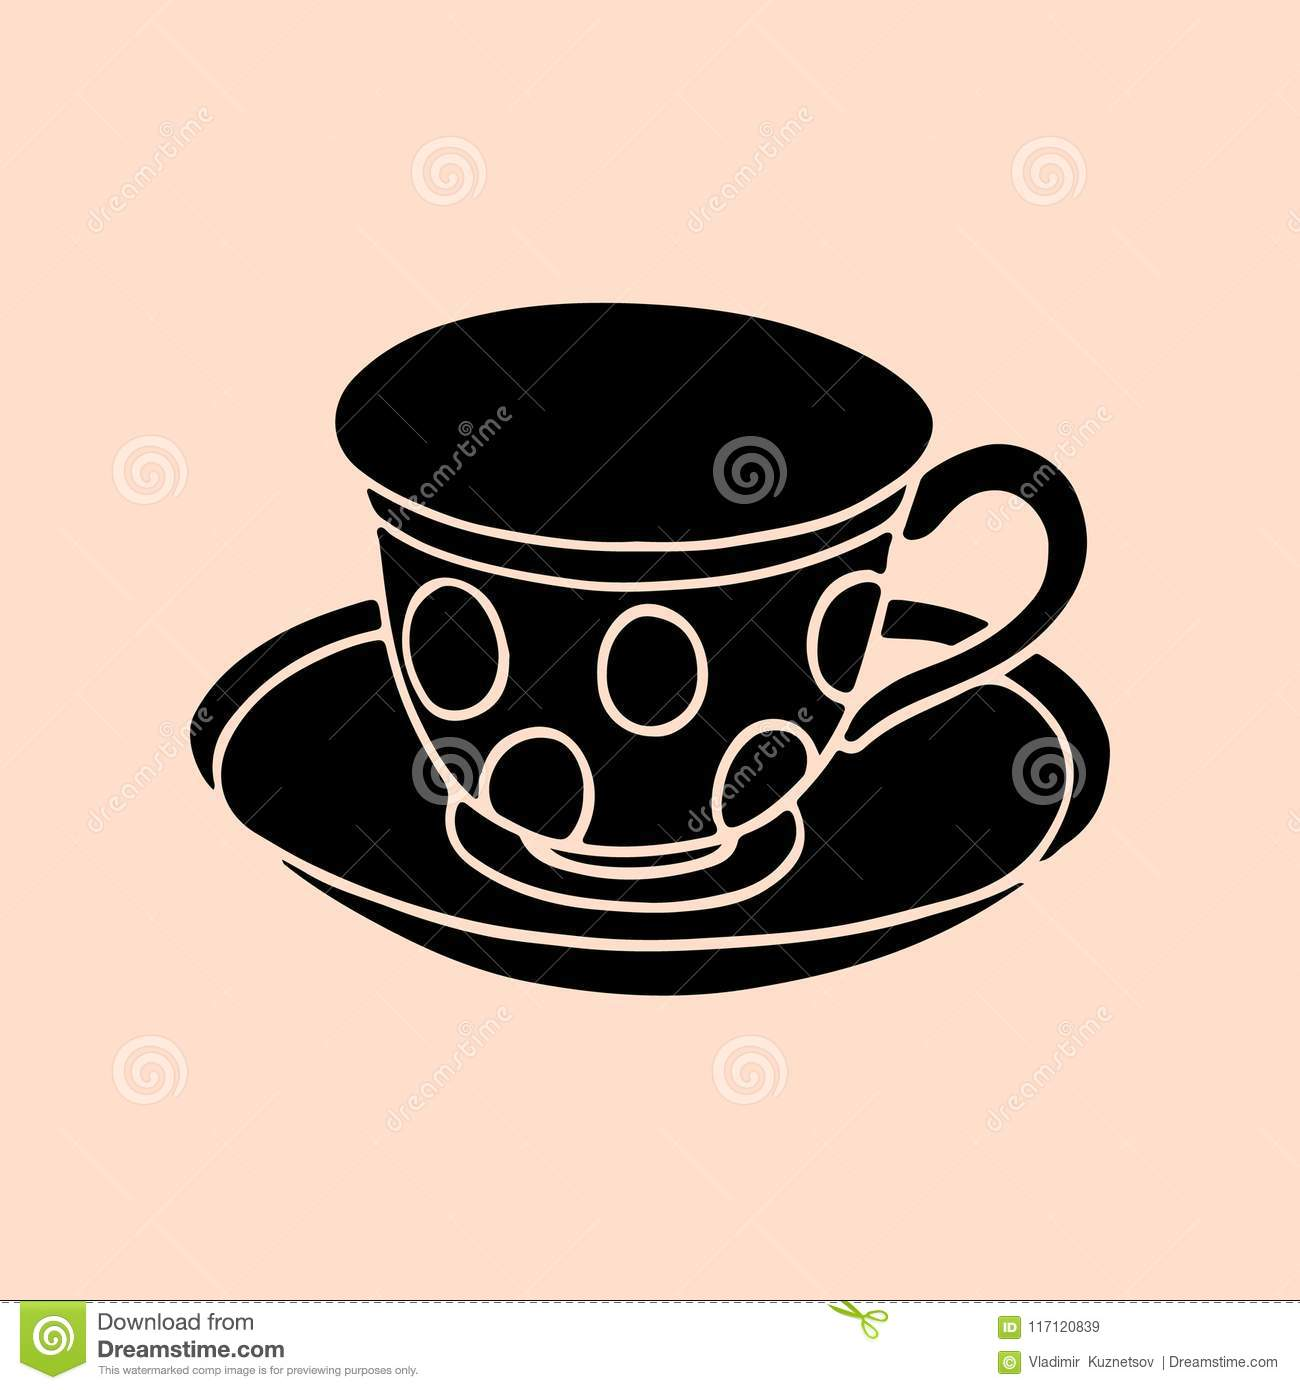 Silhouette Of A Cup And Saucer For Coffee Black On A Pink Background Stock Vector Illustration Of Background Drink 117120839